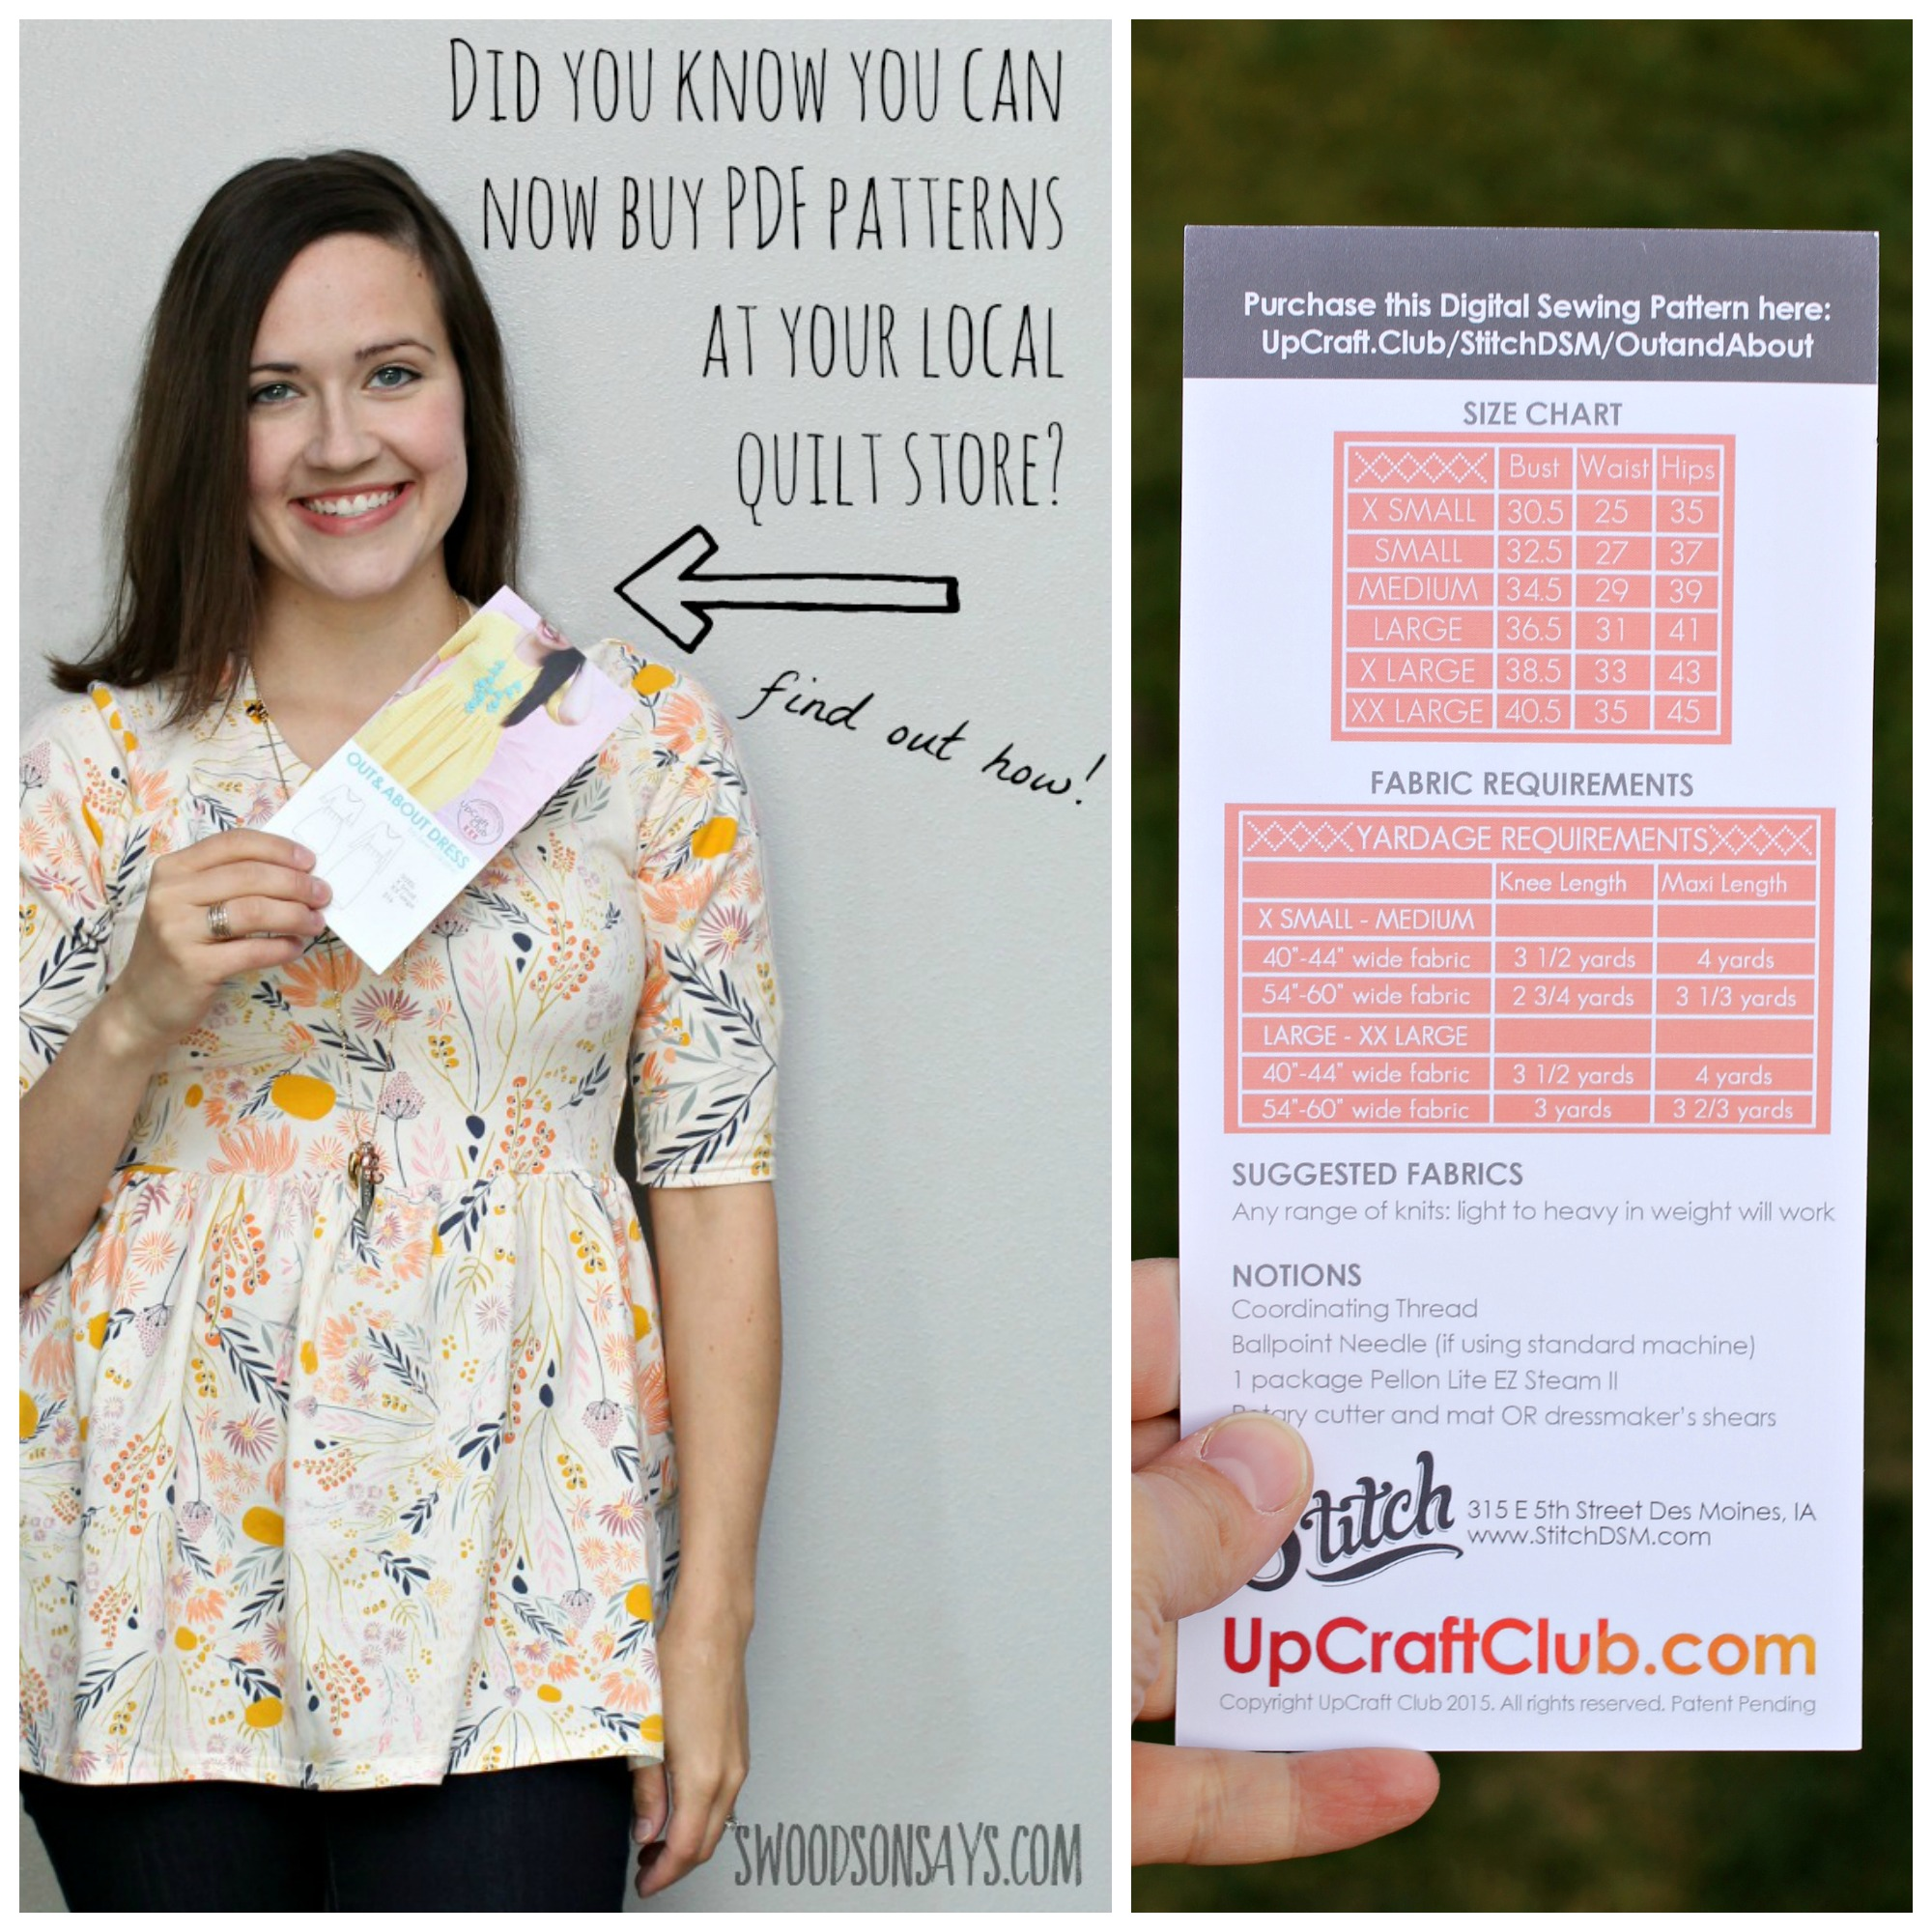 "You can buy PDF patterns at your local quilt shop now, thanks to UpCraft Club! It is so easy, I show you how in this post (and share my cute Sew Caroline Out and About ""Dress""). Sponsored post on Swoodsonsays.com"